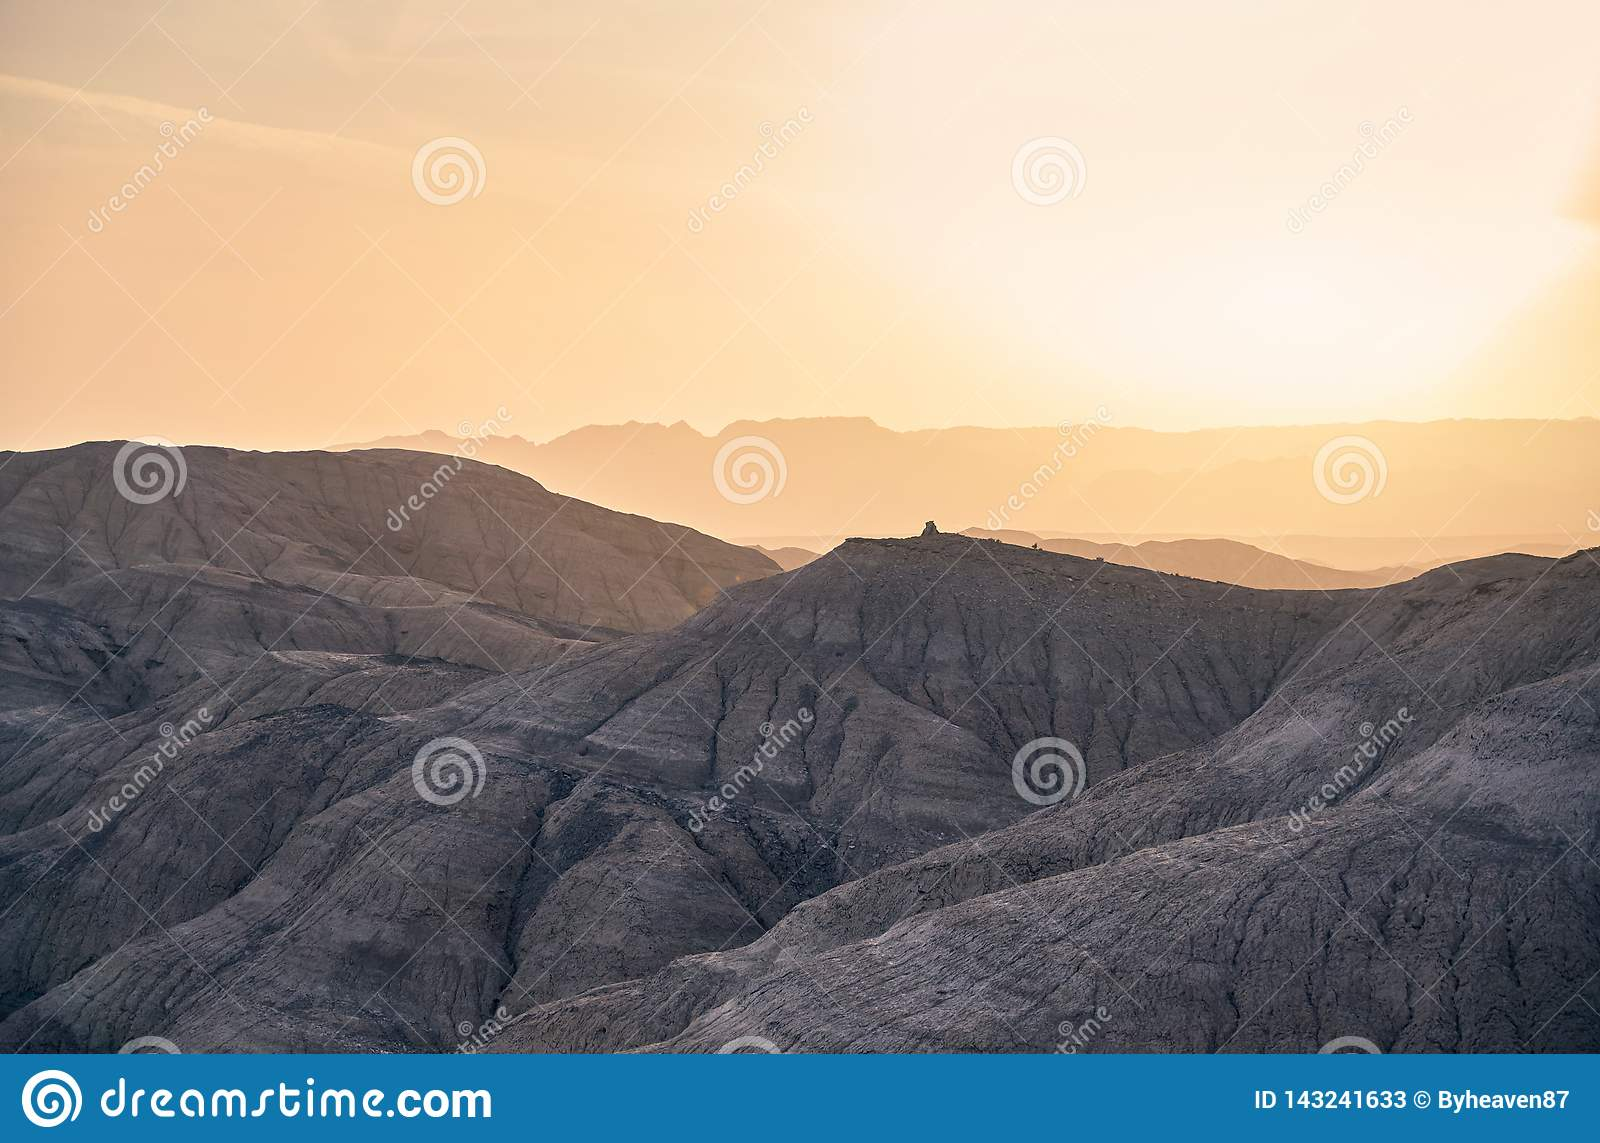 Mountains in the desert at sunset